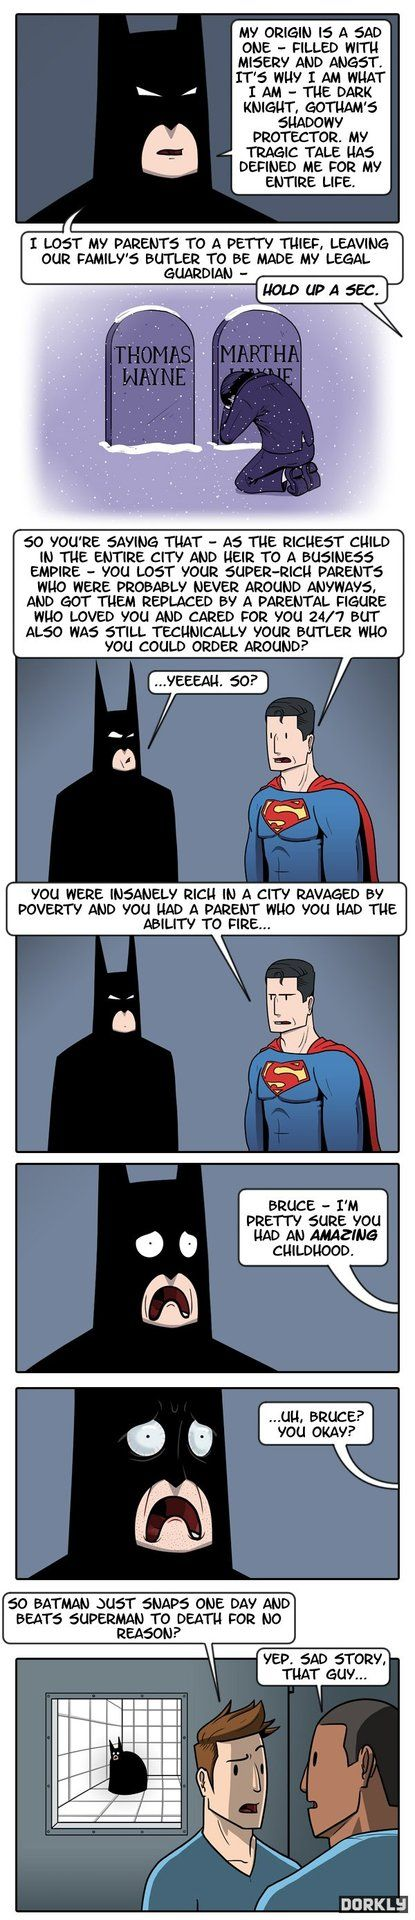 Hysterical, especially since it is true. Except for the bit about Batman beating Superman to death. That is not  funny. That's totally ludicrous.